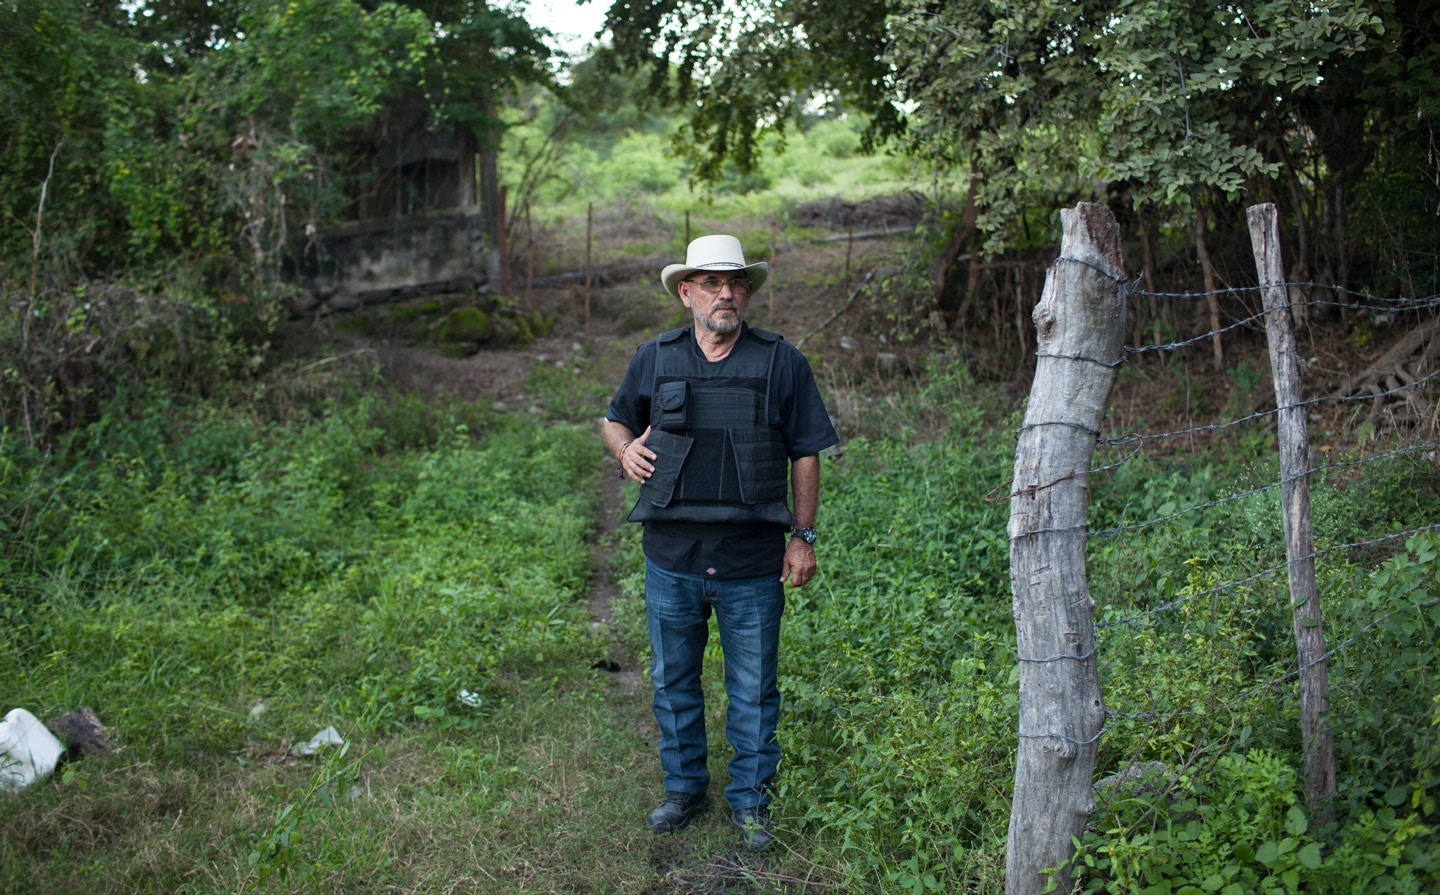 "Hipolito Mora at his families lime ranch in La Ruana, Michoacán, Mexico, Tuesday, December 15, 2015. Hipolito Mora was one of the original founder of the autodefensa movement, which saw vigilantes spread across the state of Michoacán and drive out the cartel group the 'Knights of Templar'. Since the uprising began in 2013, other criminal groups have filled the space of the previous cartel and many look at the autodefensa movement as a failure. Mora has had many challenges over the last three years, including being sent to jail twice and having his son killed in a shootout Dec. 16, 2014 during a shootout with a rival group. </p> <p>This ranch is a very important place for Mora. ""This is where I expect to die"" said Mora, motioning to the hills surrounding the ranch, which would make for a great spot for a shooter to hide. ""My son and I had plans to build up the house and make this out place, it was out dream, but that was before.""<br /> (Brett Gundlock/Boreal Collective)"